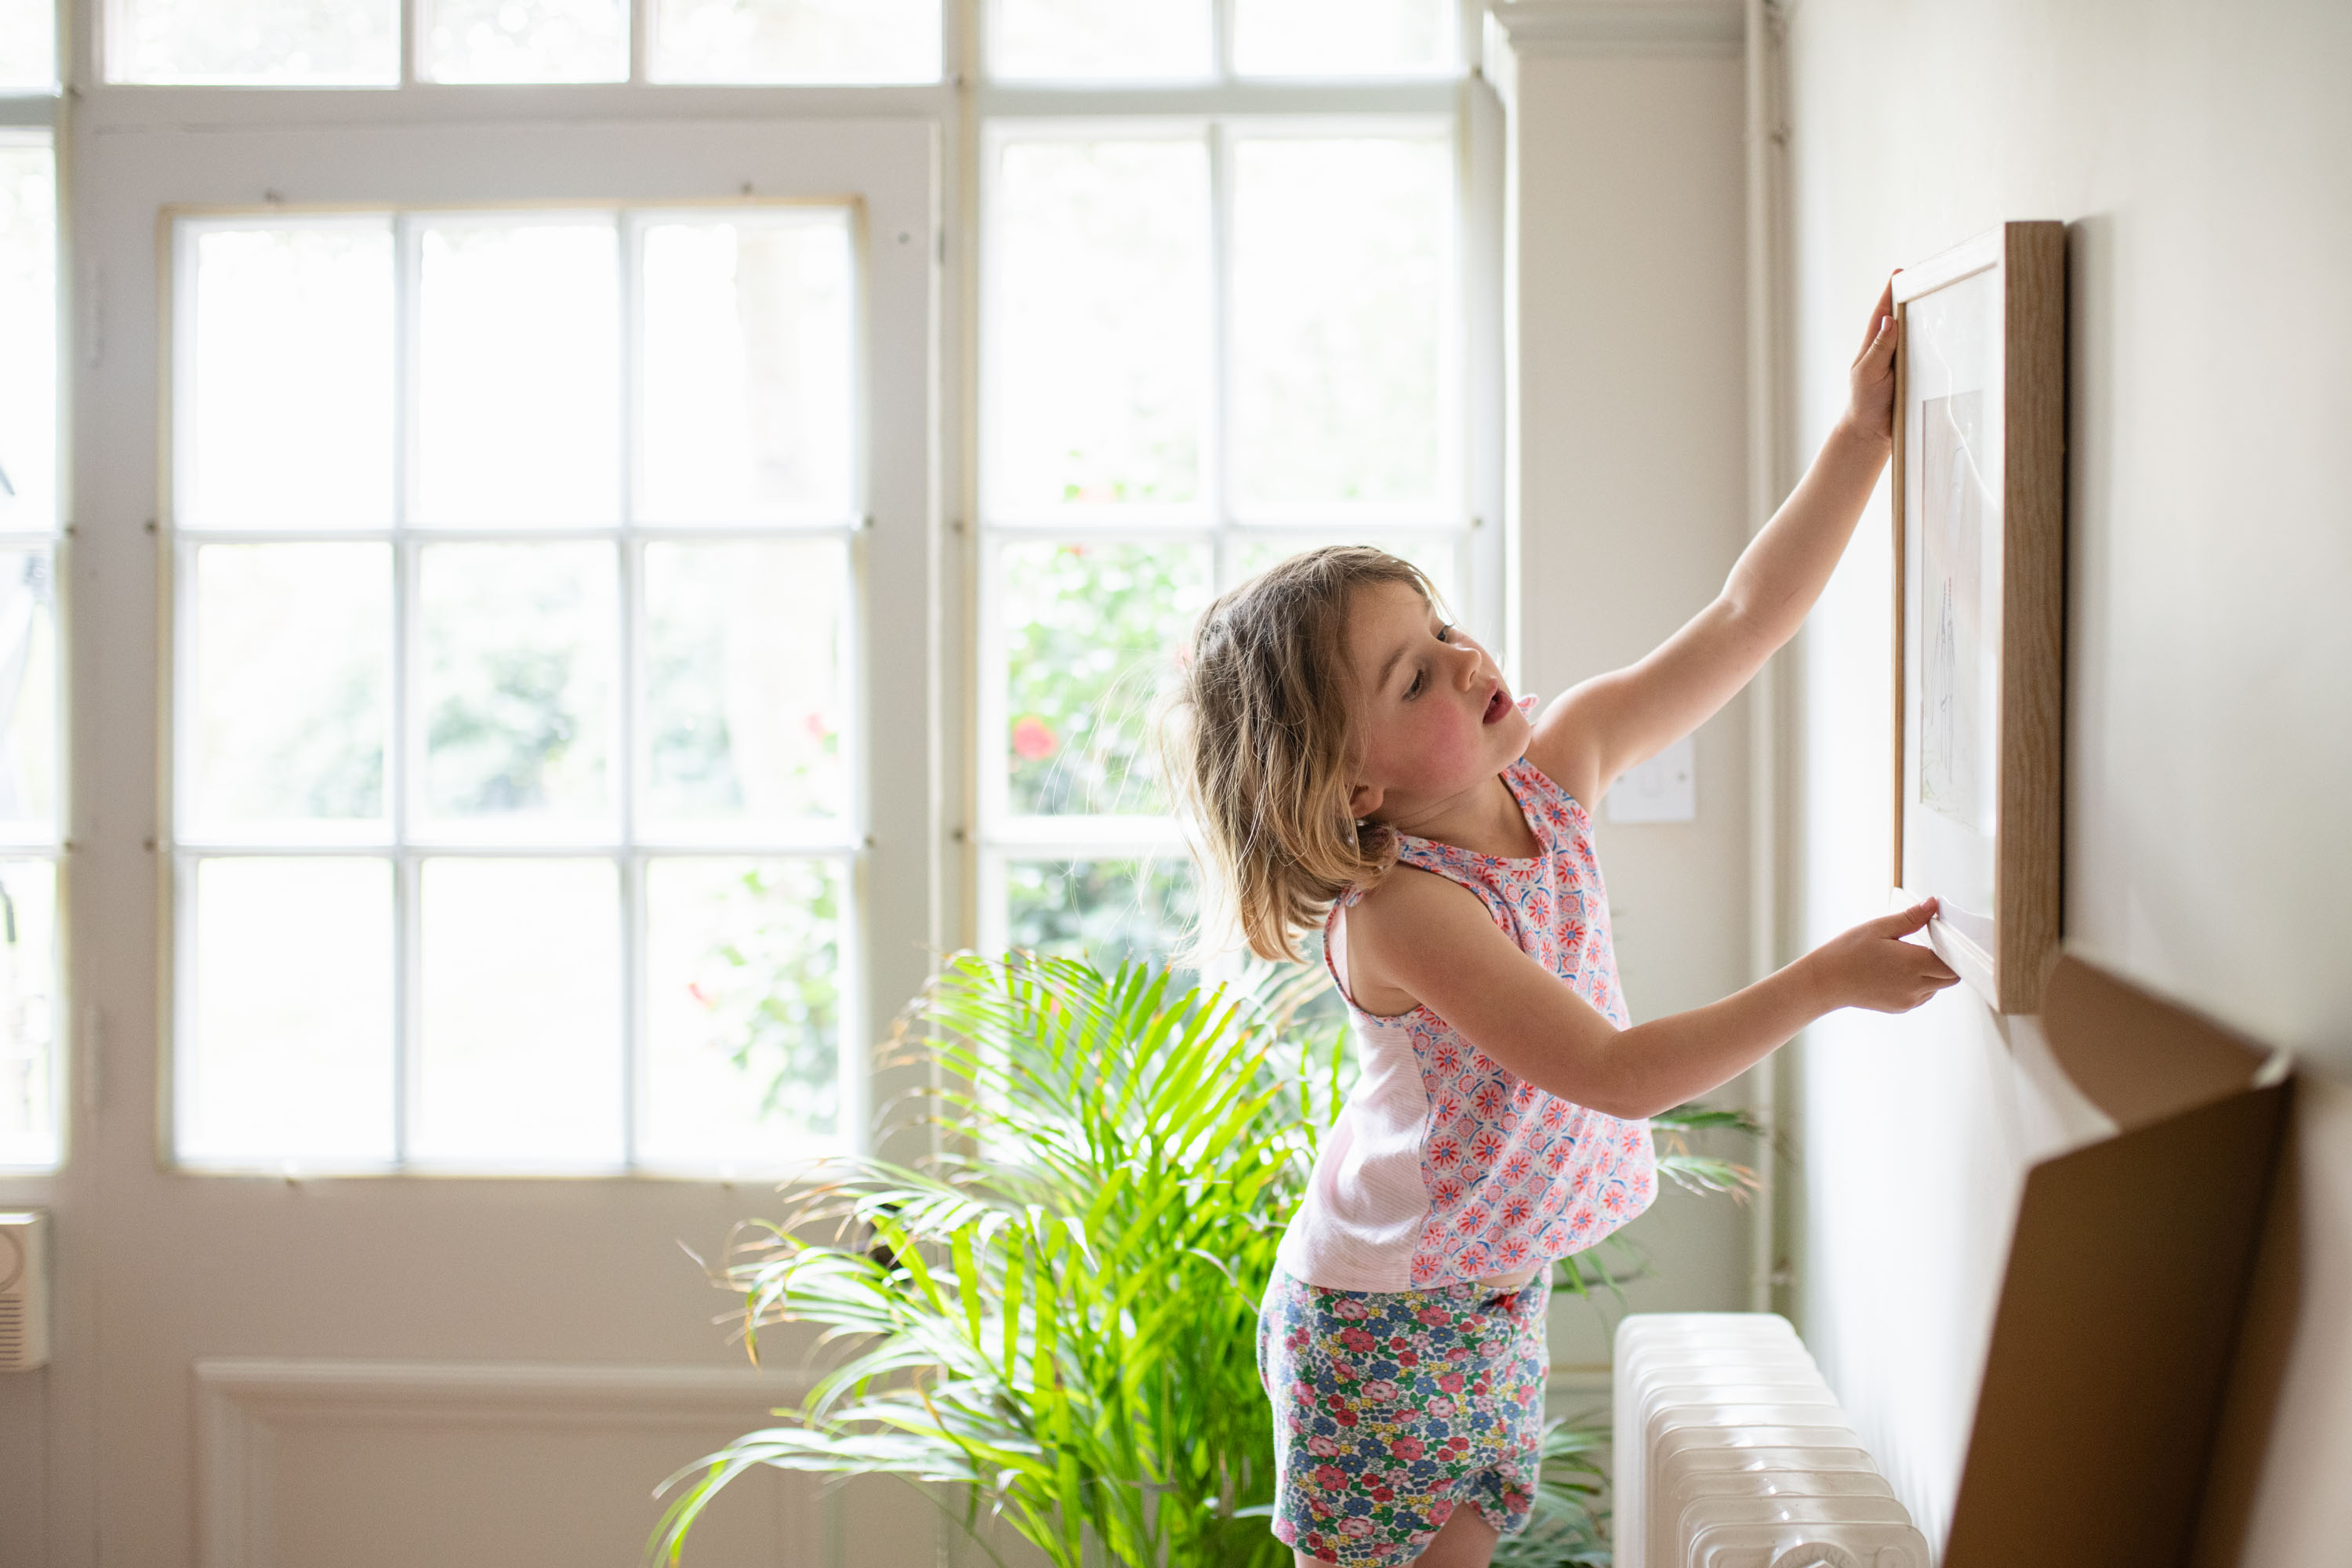 A young girl hanging a picture frame